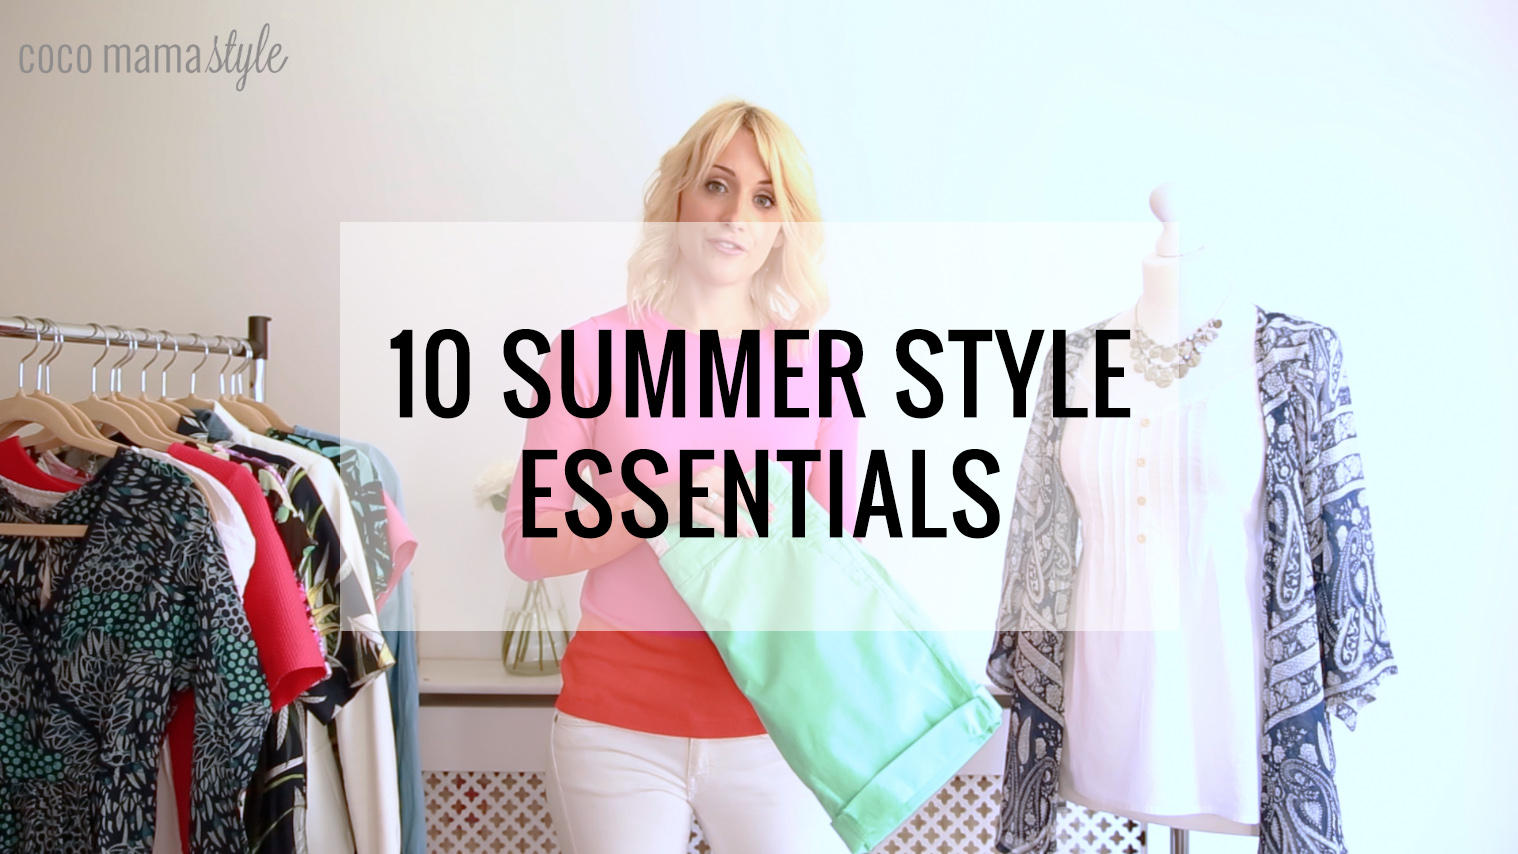 VIDEO 10 sumer style essentials with MANDMDIRECT cocomamastyle VIDEO